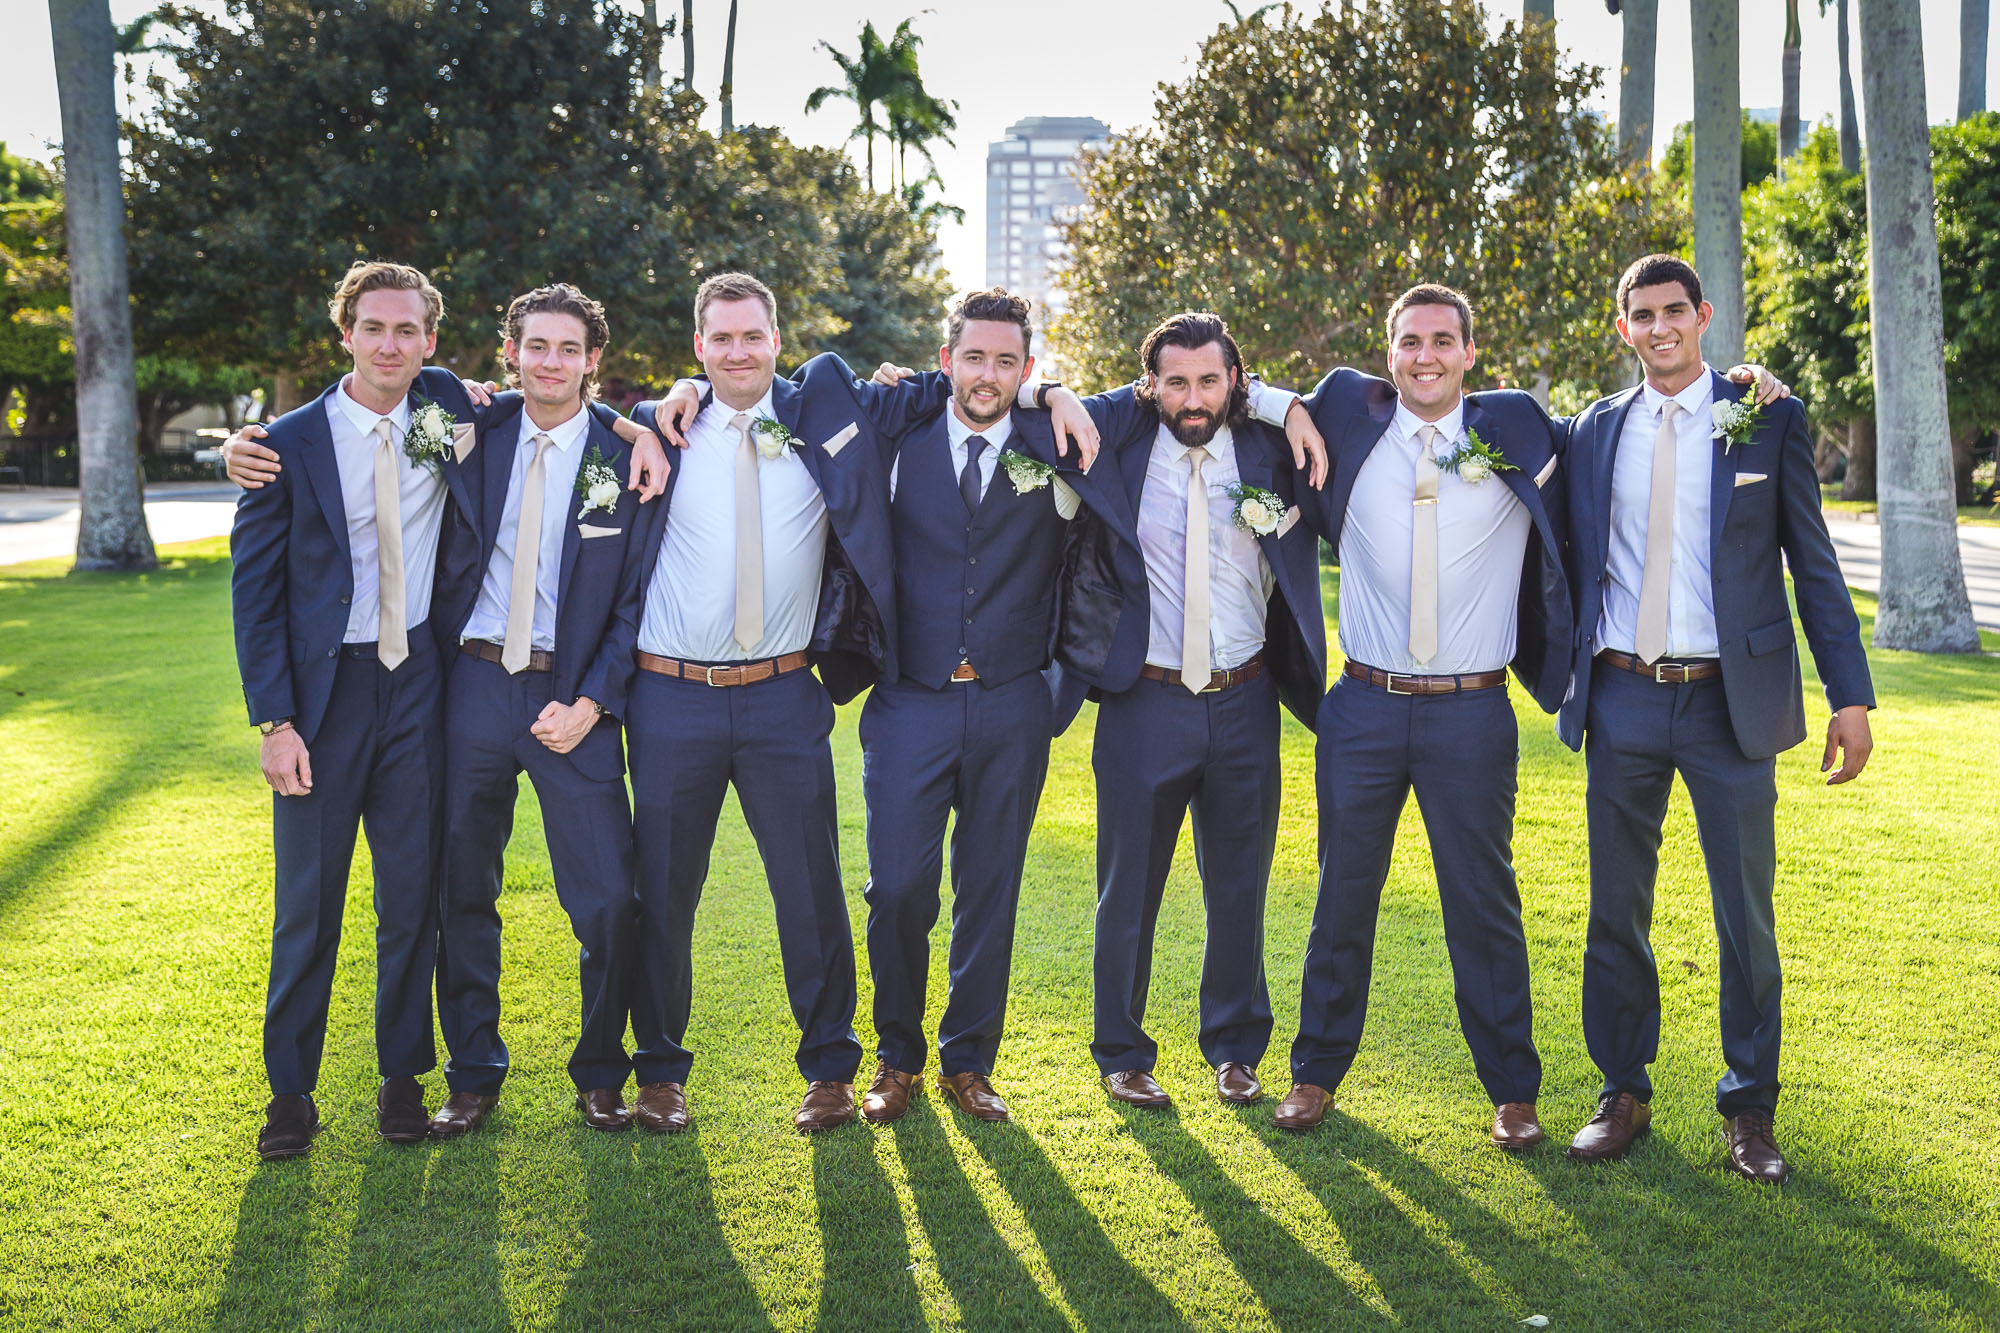 Greg Ferko Shot This Wedding in Ft Lauderdale 45